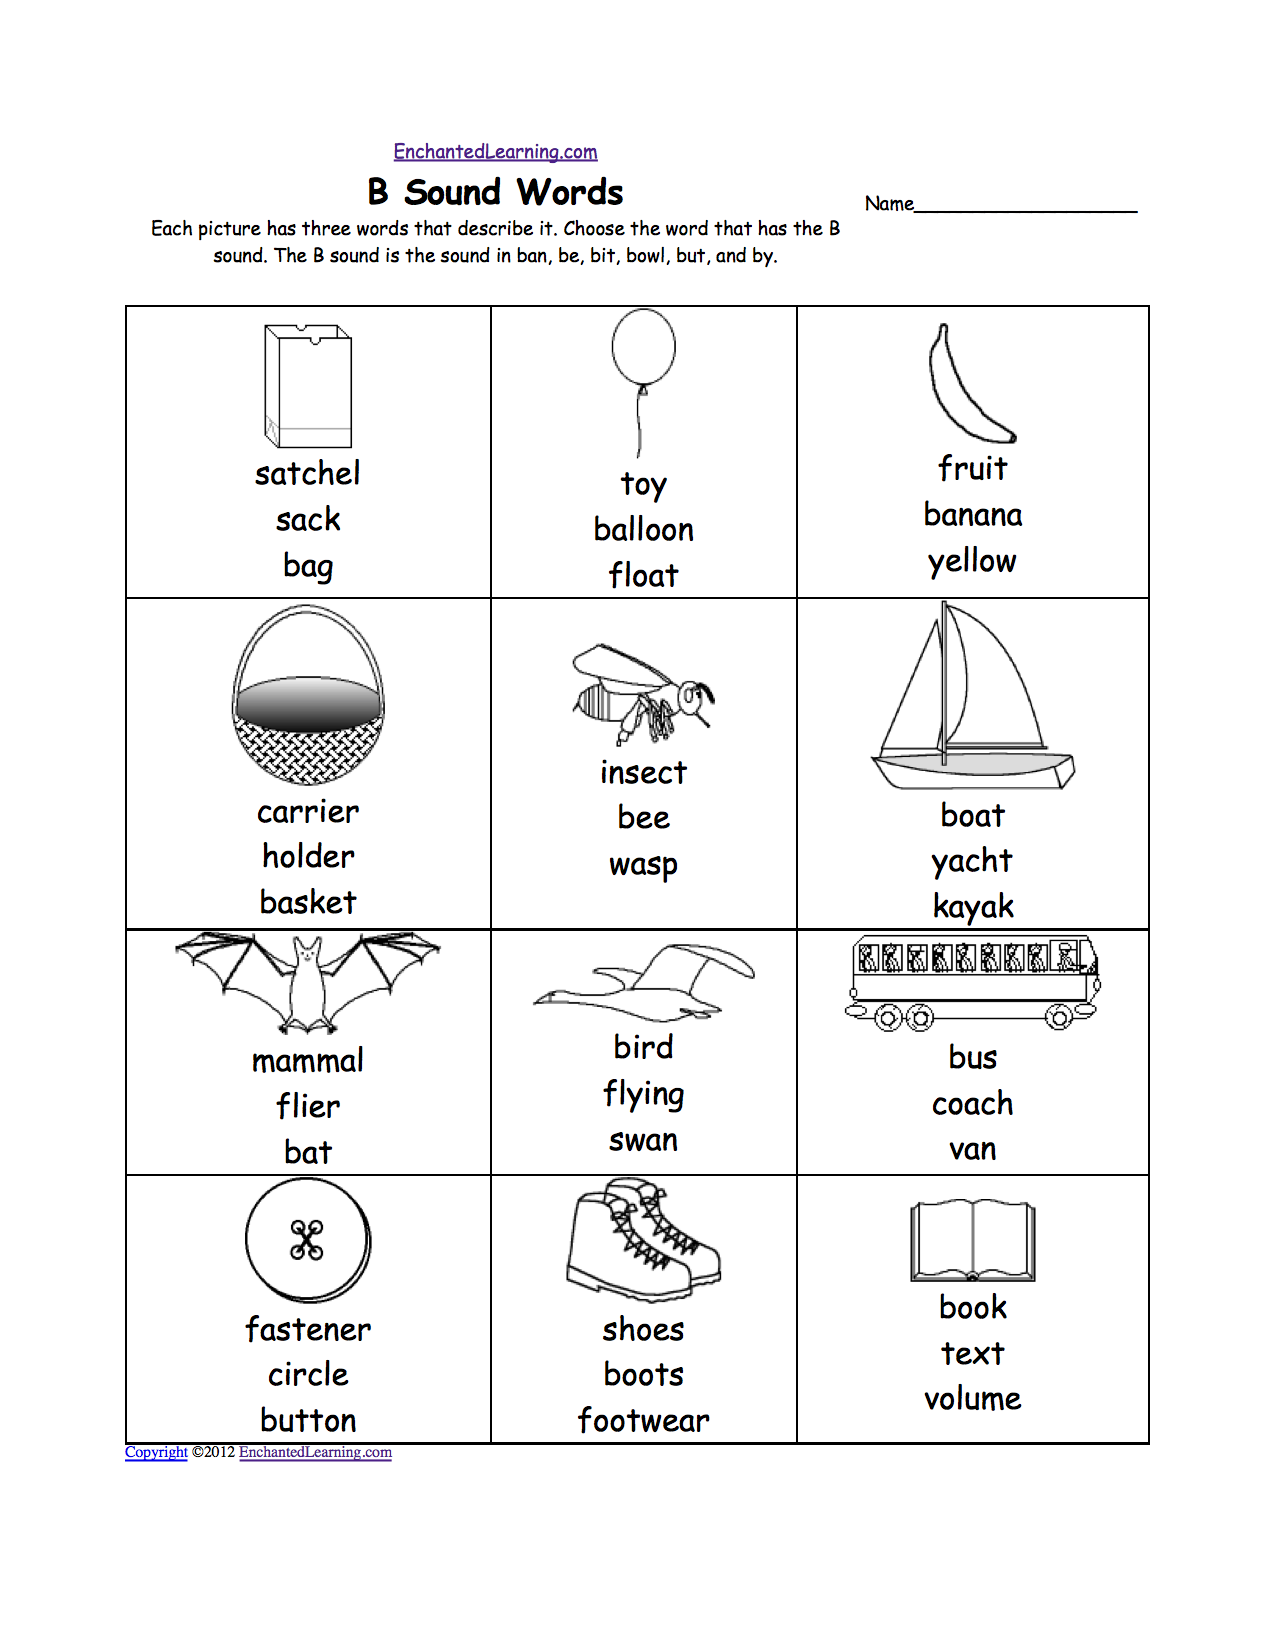 Weirdmailus  Terrific Phonics Worksheets Multiple Choice Worksheets To Print  With Luxury Quotbquot Sound Phonics Worksheet Multiple Choice Each Picture Has Three Words That Describe It Choose The Word That Has A Quotbquot Sound The Quotbquot Sound Is The Sound  With Extraordinary Peer Edit Worksheet Also Estimated Tax Worksheet Calculator In Addition Sat Vocabulary Practice Worksheets And Third Grade Reading Comprehension Worksheets Free As Well As Types Of Precipitation Worksheet Additionally Percentage Practice Worksheet From Enchantedlearningcom With Weirdmailus  Luxury Phonics Worksheets Multiple Choice Worksheets To Print  With Extraordinary Quotbquot Sound Phonics Worksheet Multiple Choice Each Picture Has Three Words That Describe It Choose The Word That Has A Quotbquot Sound The Quotbquot Sound Is The Sound  And Terrific Peer Edit Worksheet Also Estimated Tax Worksheet Calculator In Addition Sat Vocabulary Practice Worksheets From Enchantedlearningcom